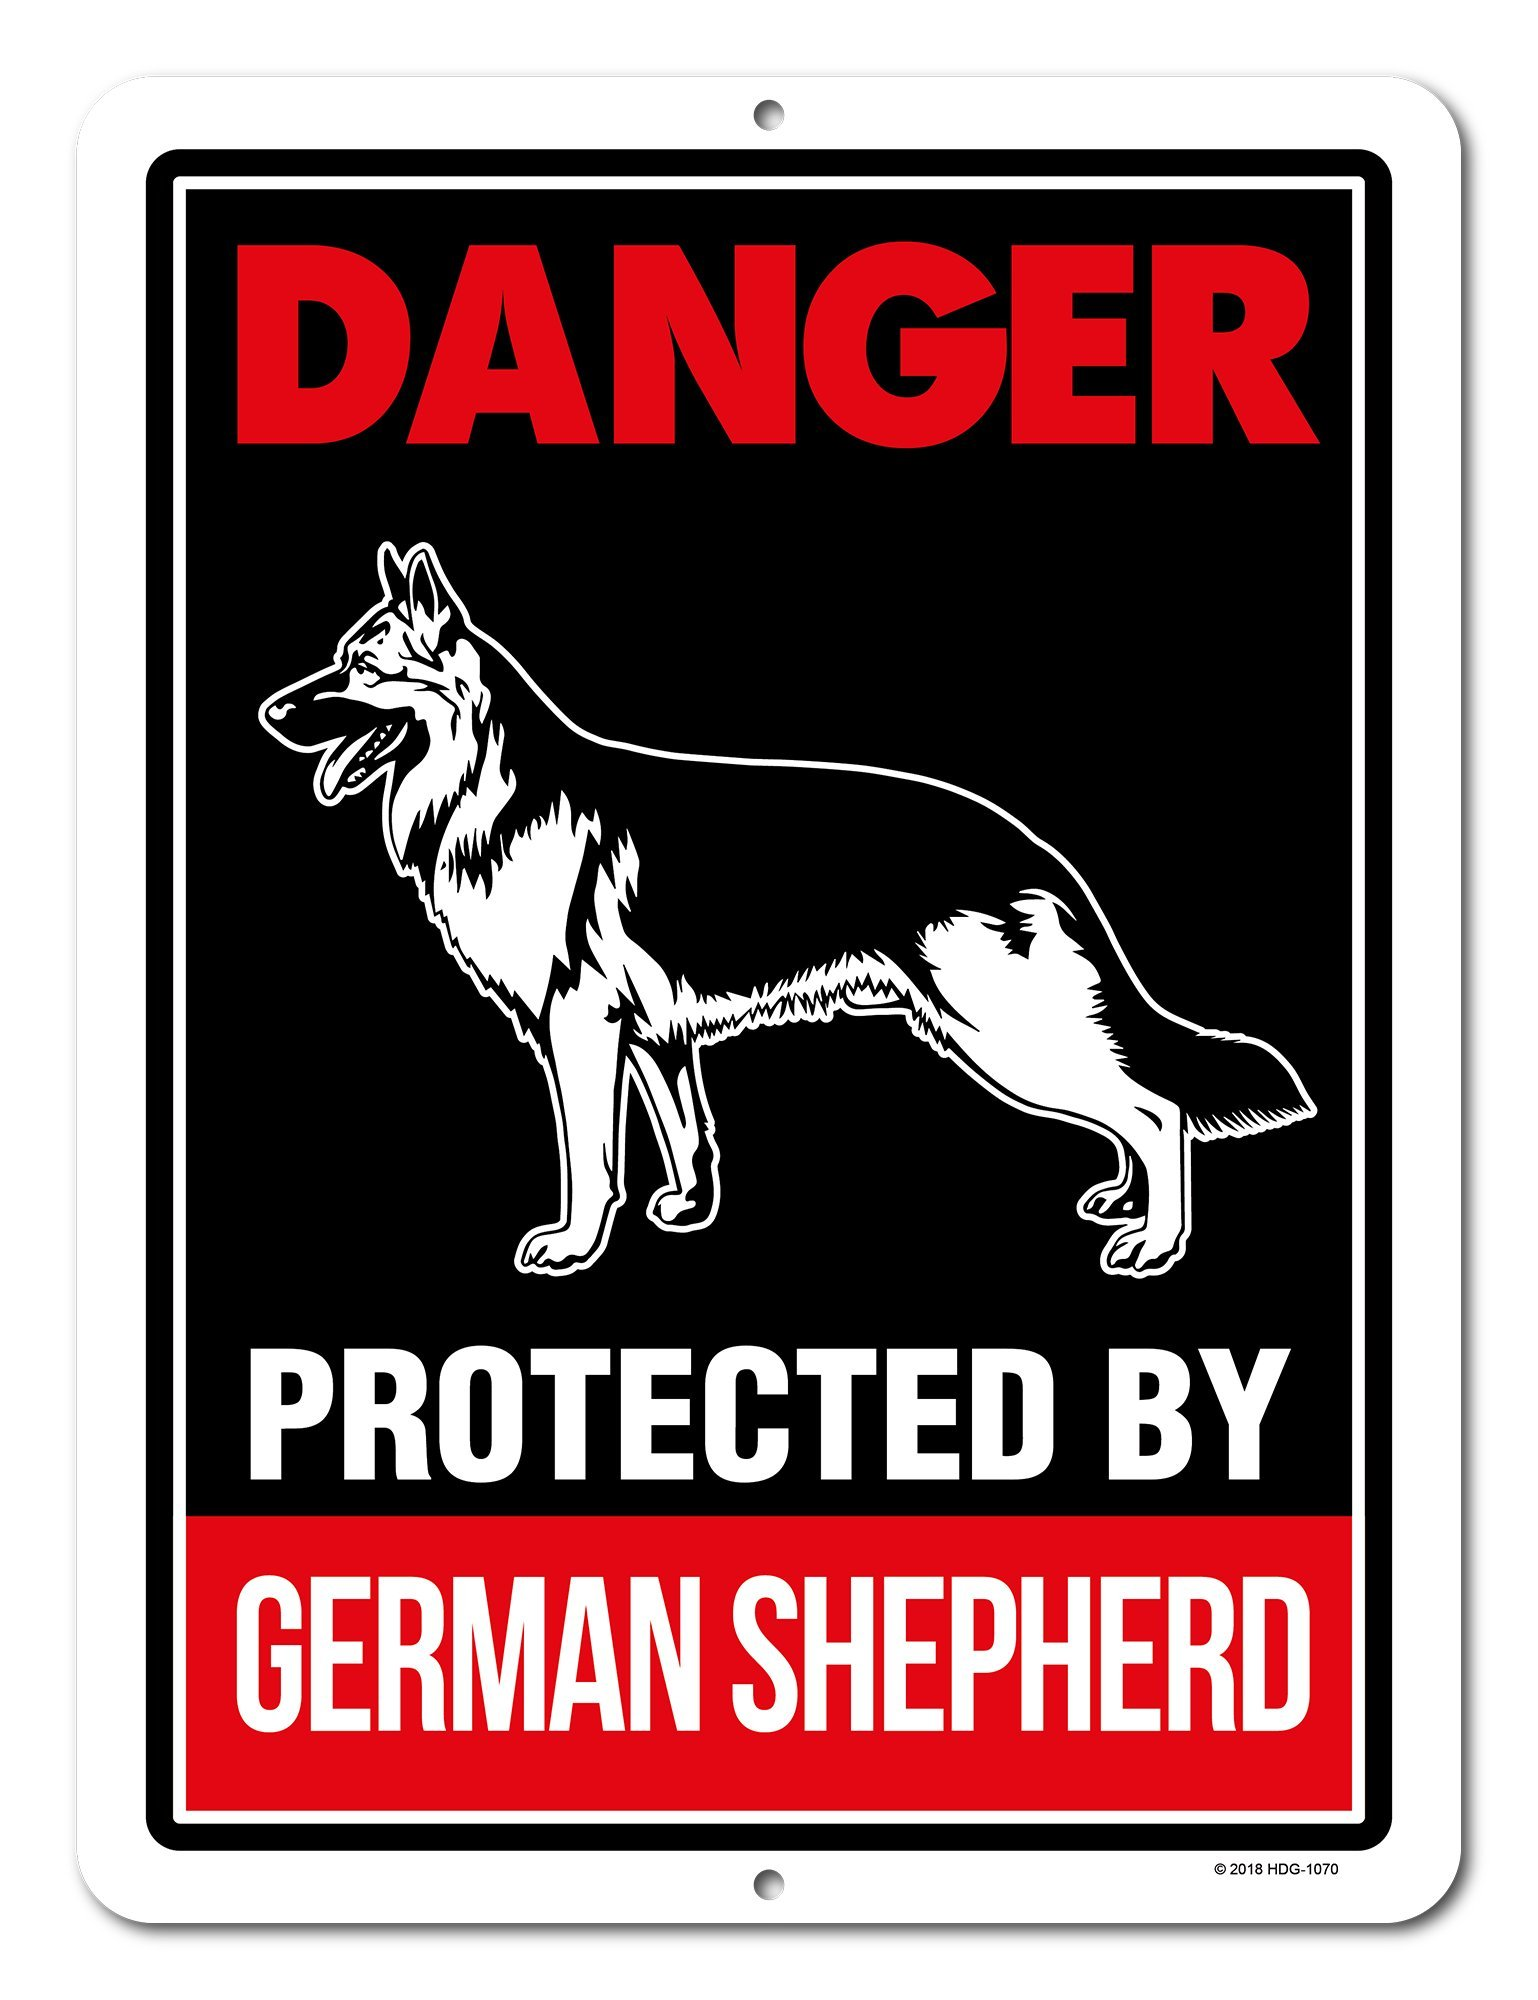 Honey Dew Gifts Beware of German Shepherd Signs, Danger Protected By German Shepherd 9 x 12 inch Beware of Dog Warning Metal Aluminum Sign, Guard Dog Sign